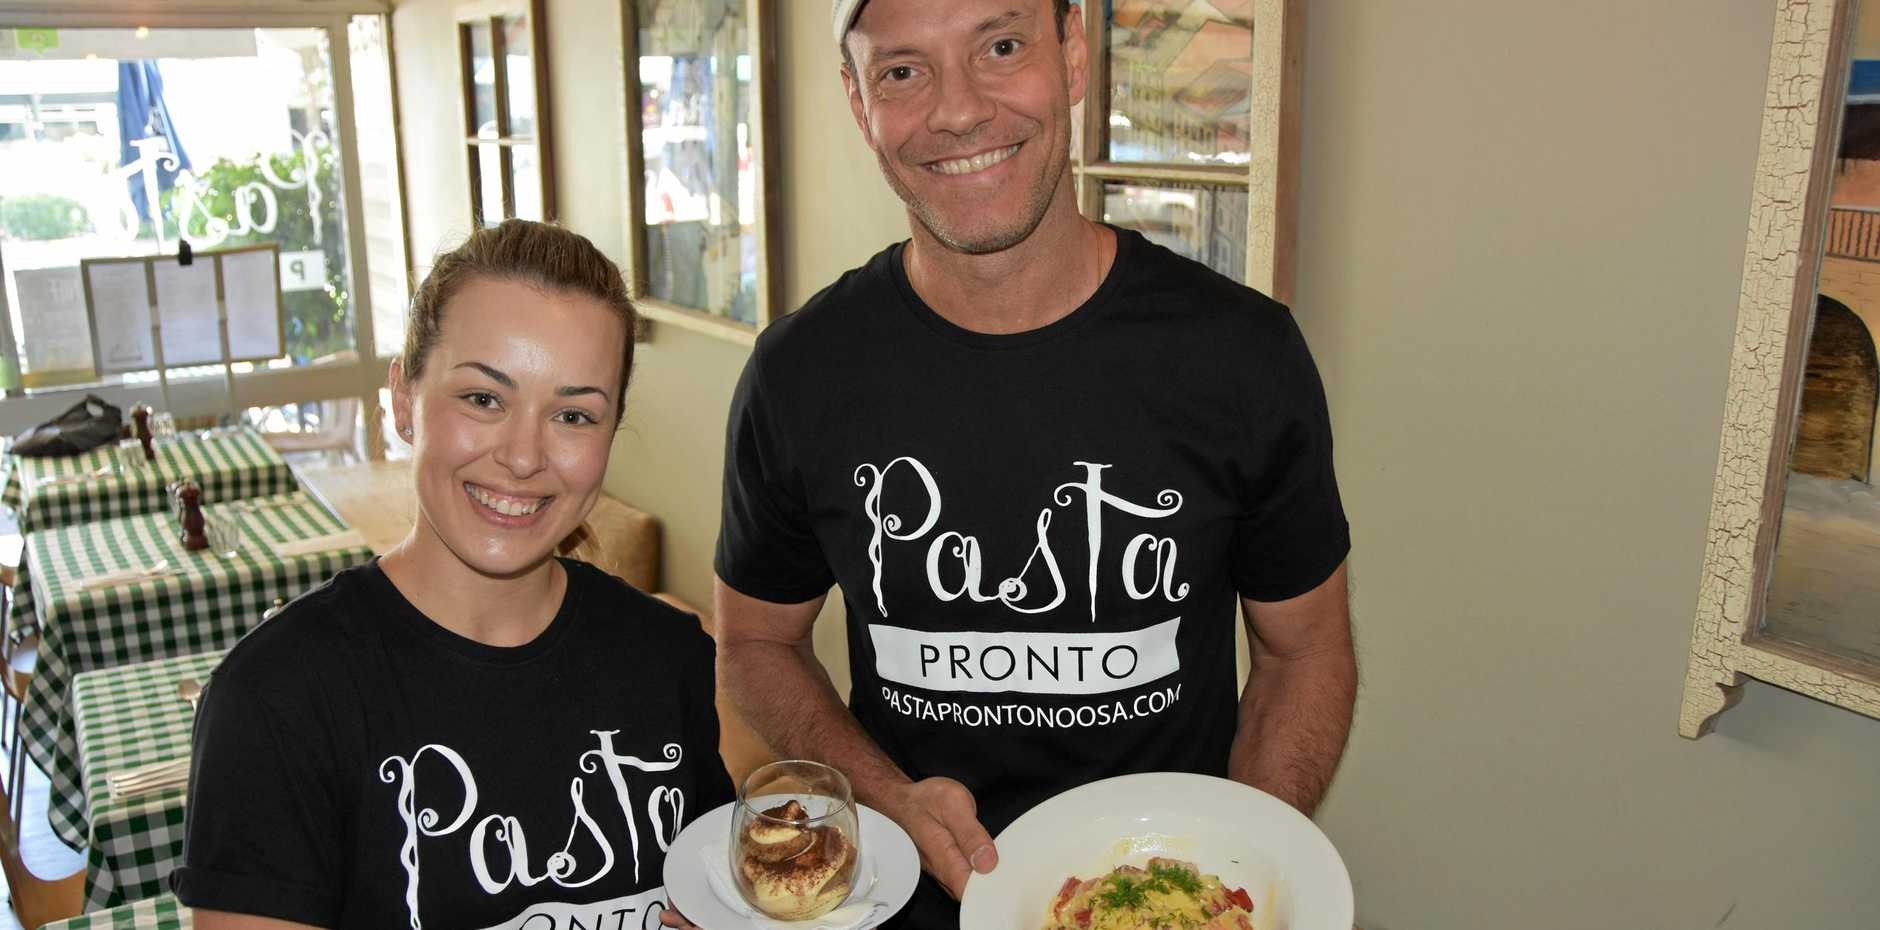 THE PLACE TO BE: Pasta Pronto has you covered for the Noosa Triathlon.